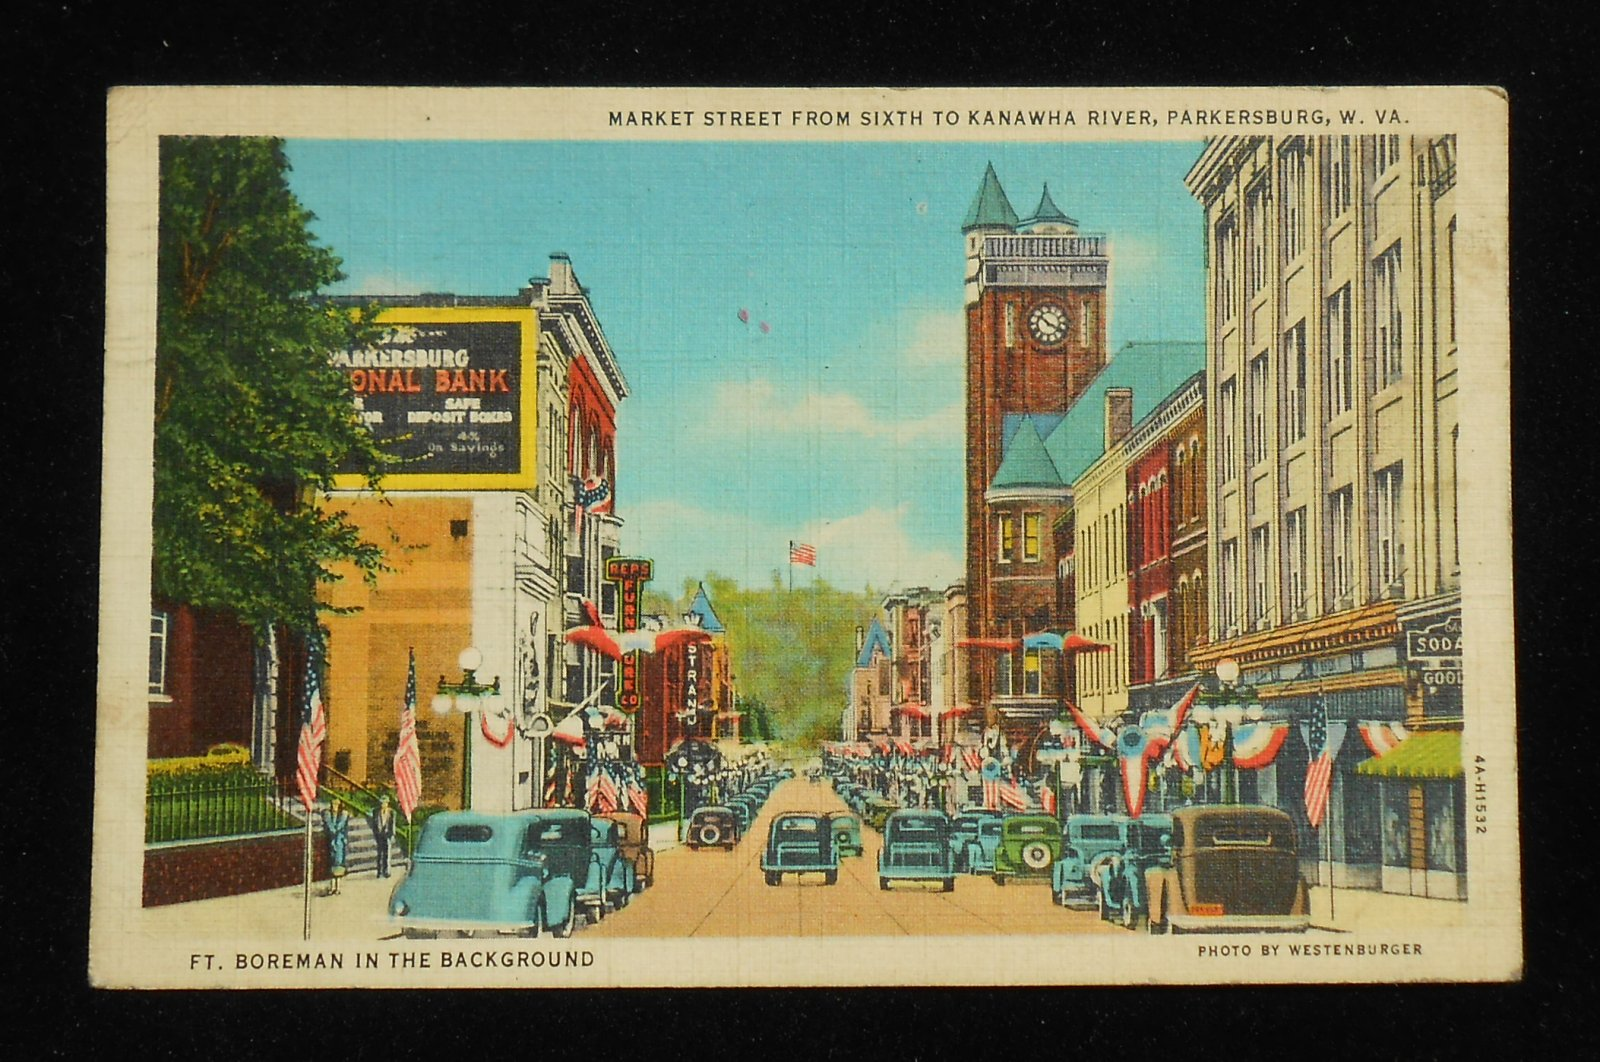 1937 market street sixth to kanawha river old cars stores signs parkersburg wv ebay. Black Bedroom Furniture Sets. Home Design Ideas